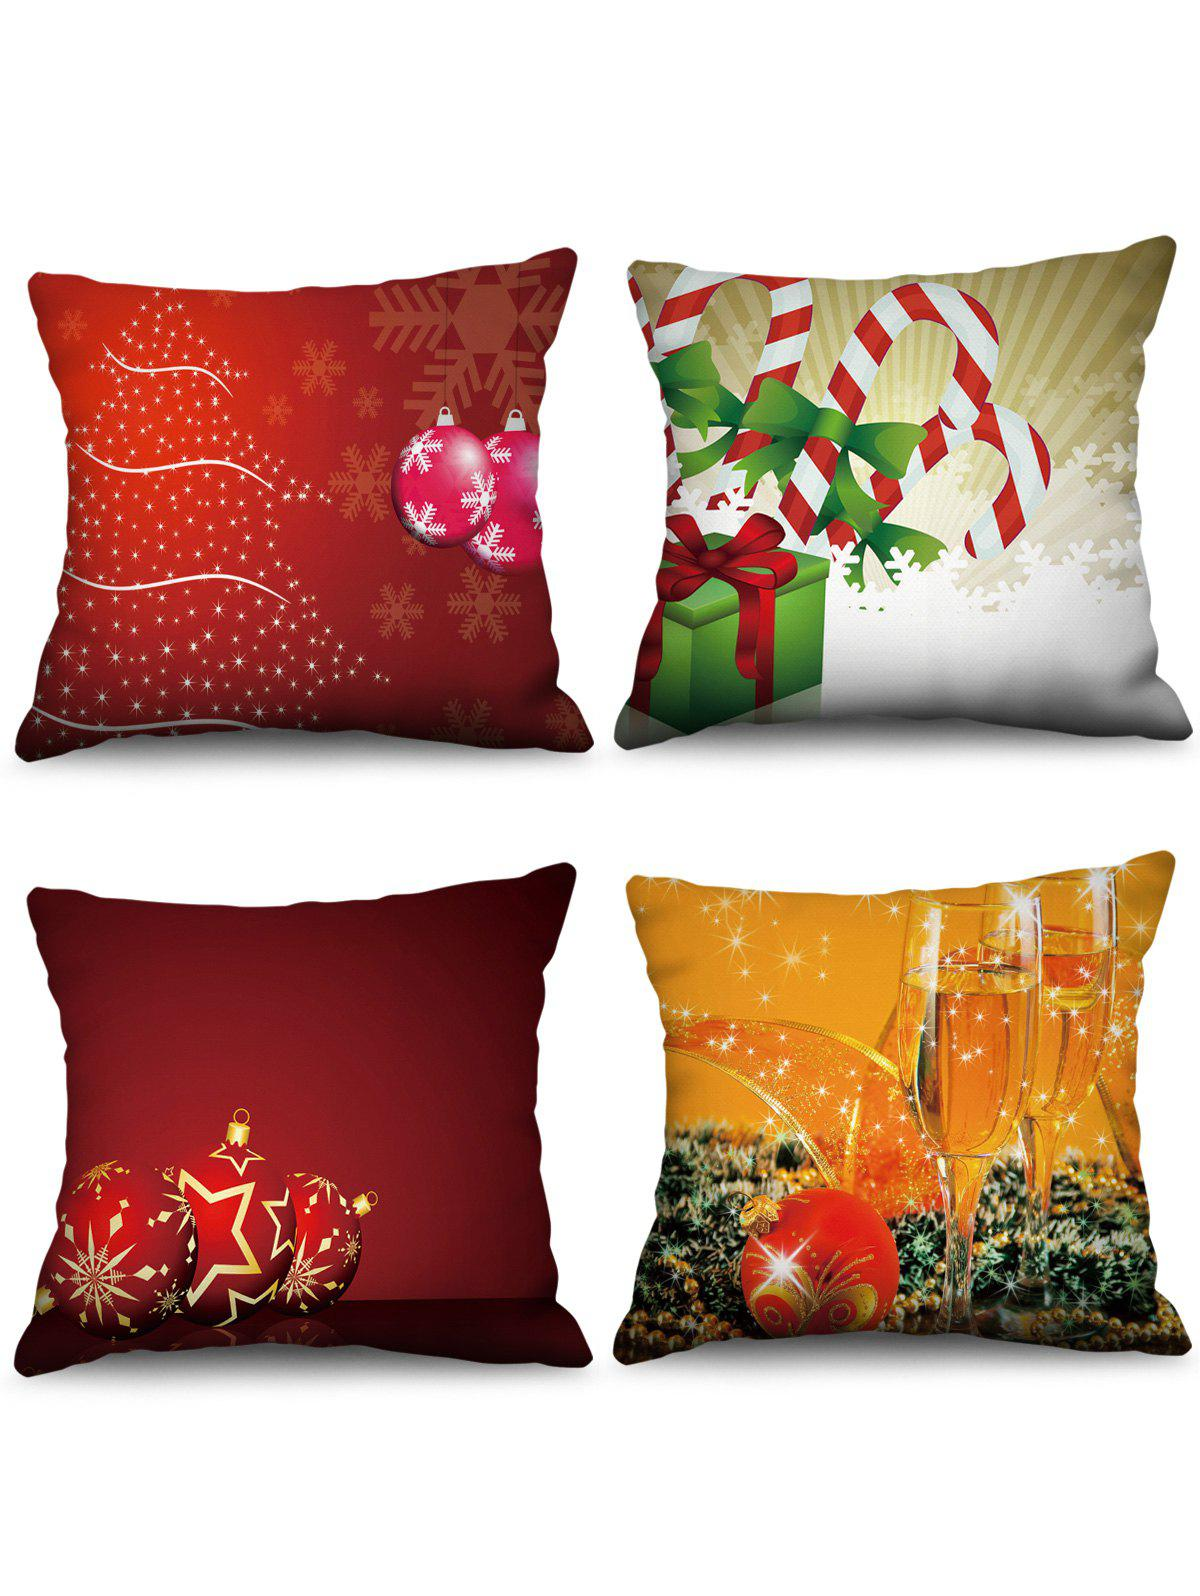 4 Pcs Christmas Balls Print Sofa Linen Pillowcases - multicolor